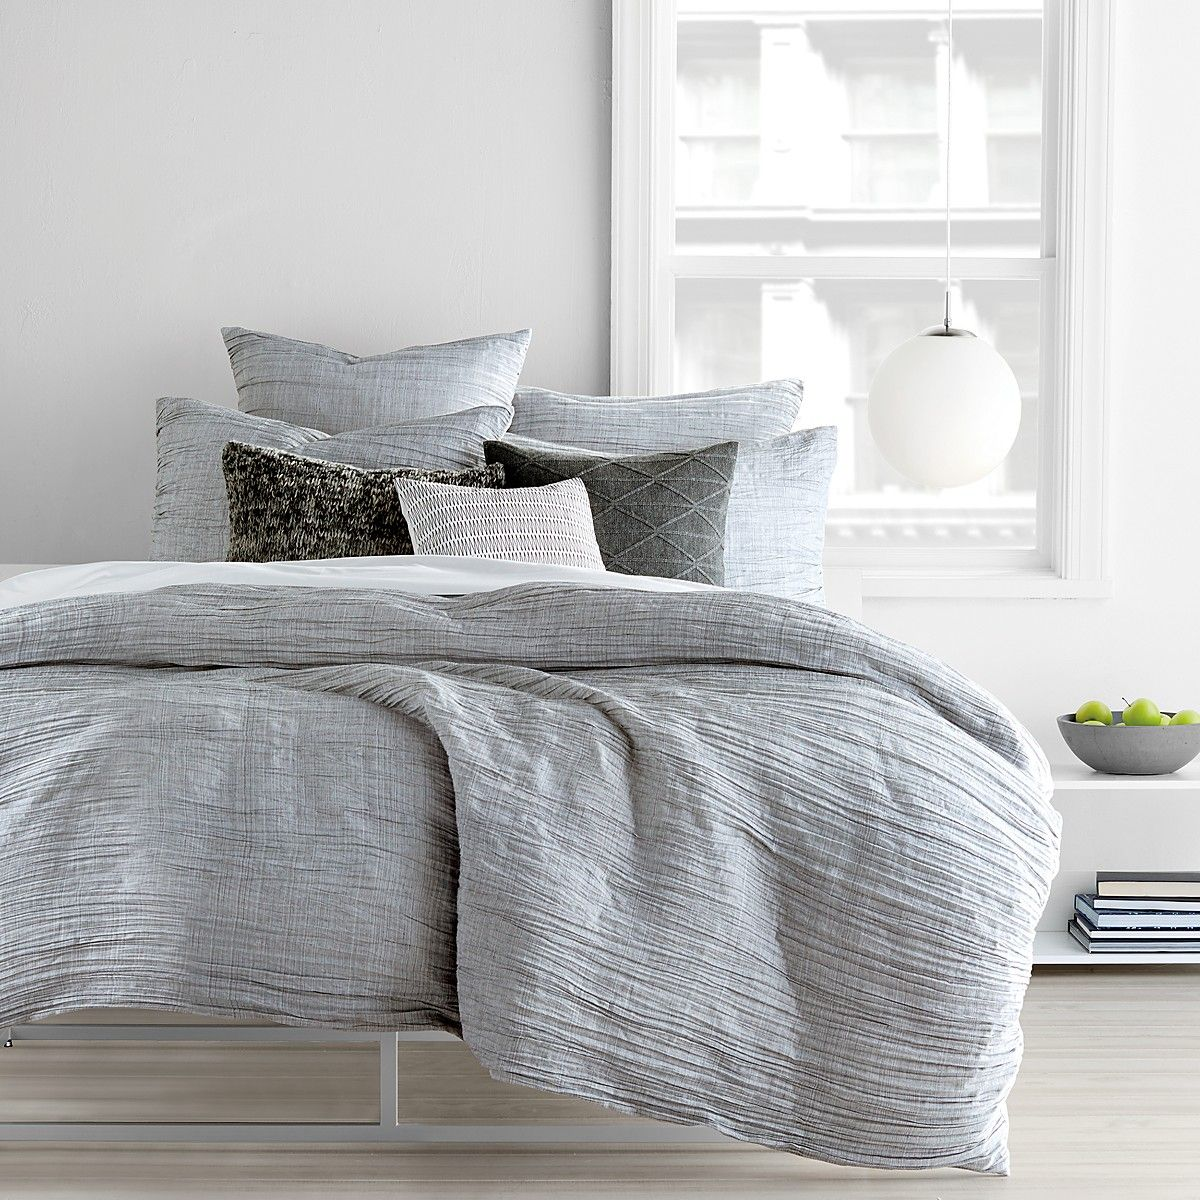 duvet grey satina pin mille and cover notti light pillowcase